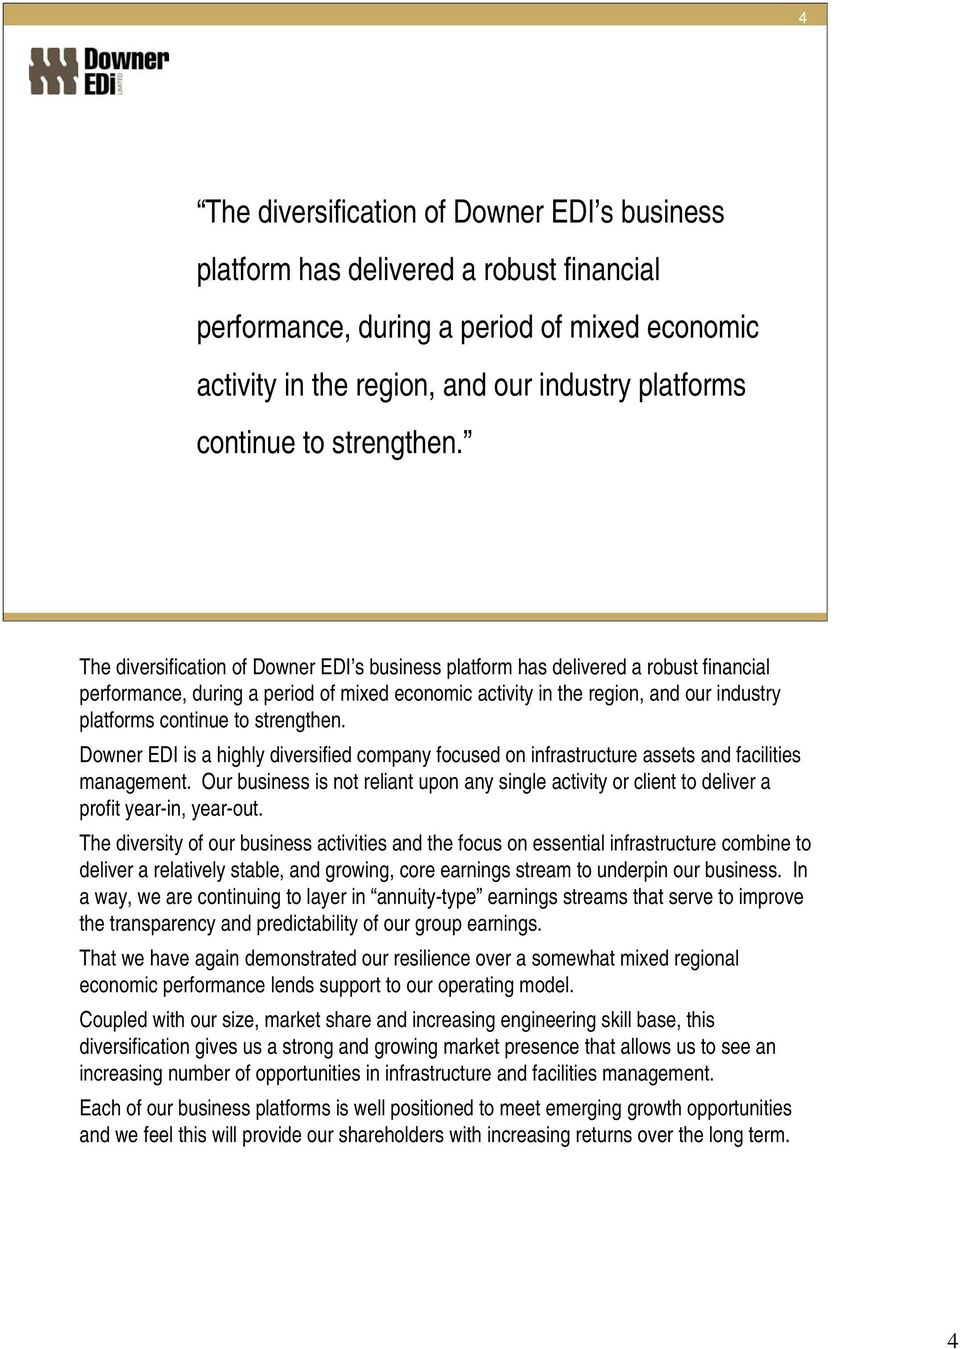 The diversification of Downer EDI s business platform has delivered a robust financial performance, during a period of mixed economic activity in the region, and our industry platforms continue to